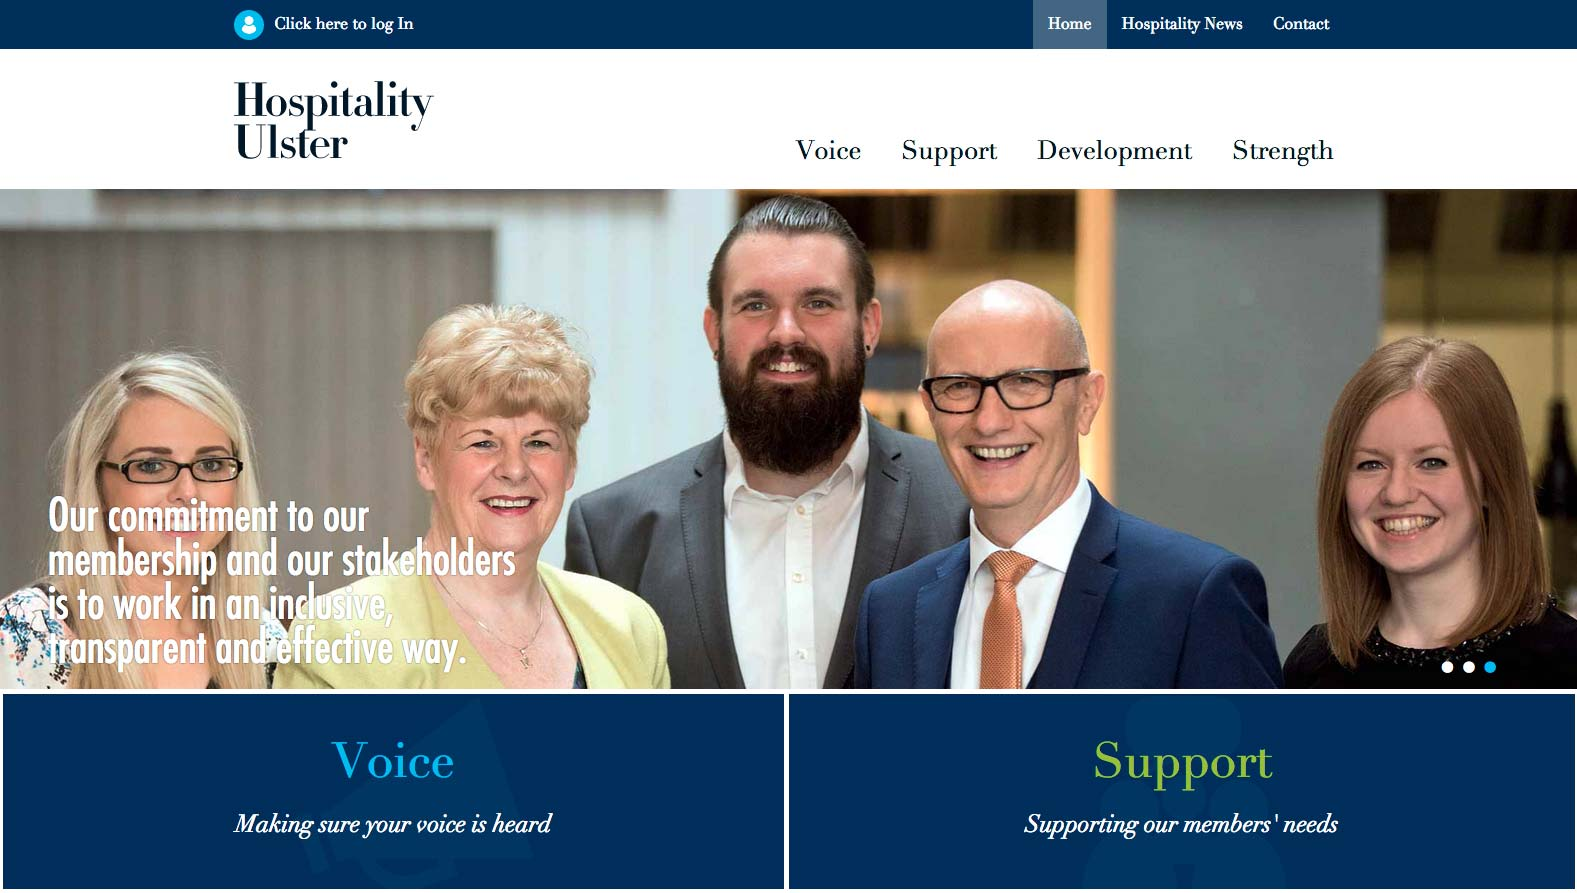 New Web Design For Hospitality Ulster